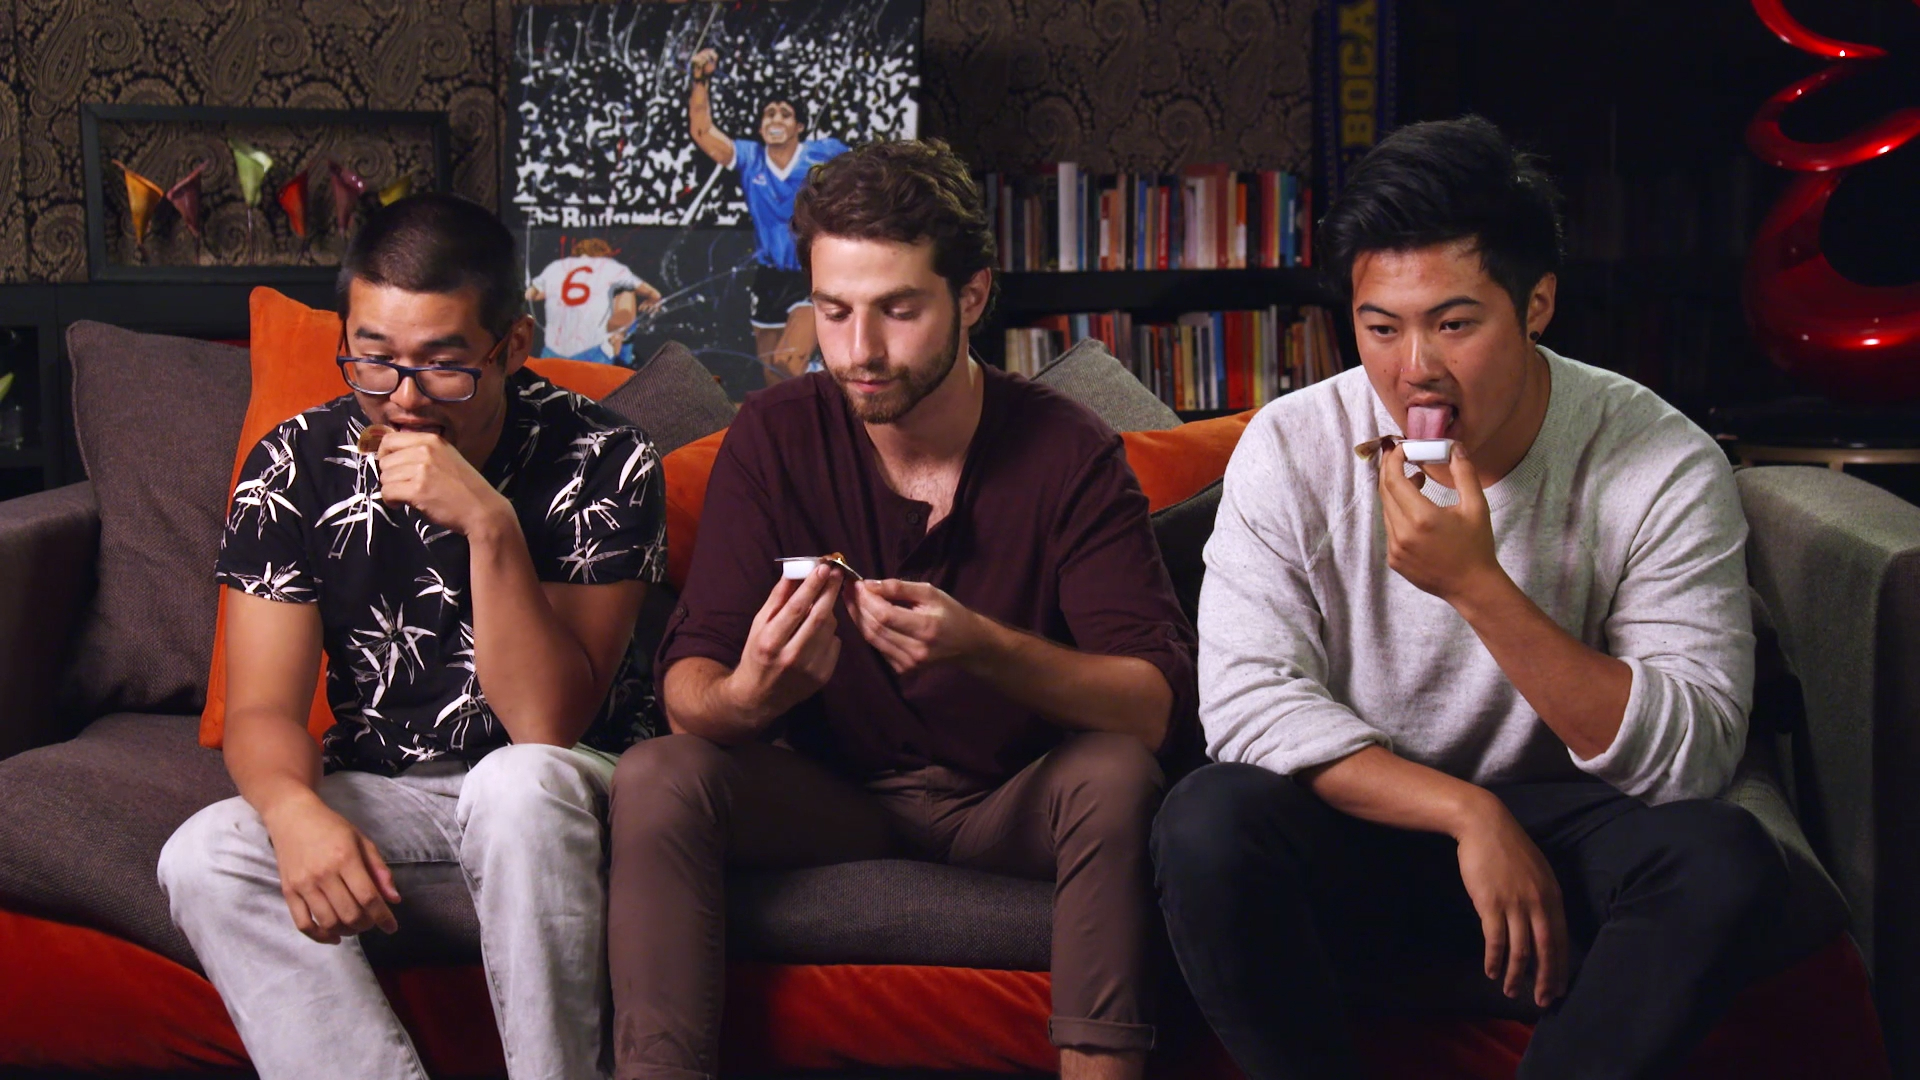 Kev, Dorian and Teng try the 'Nutella' of Argentina